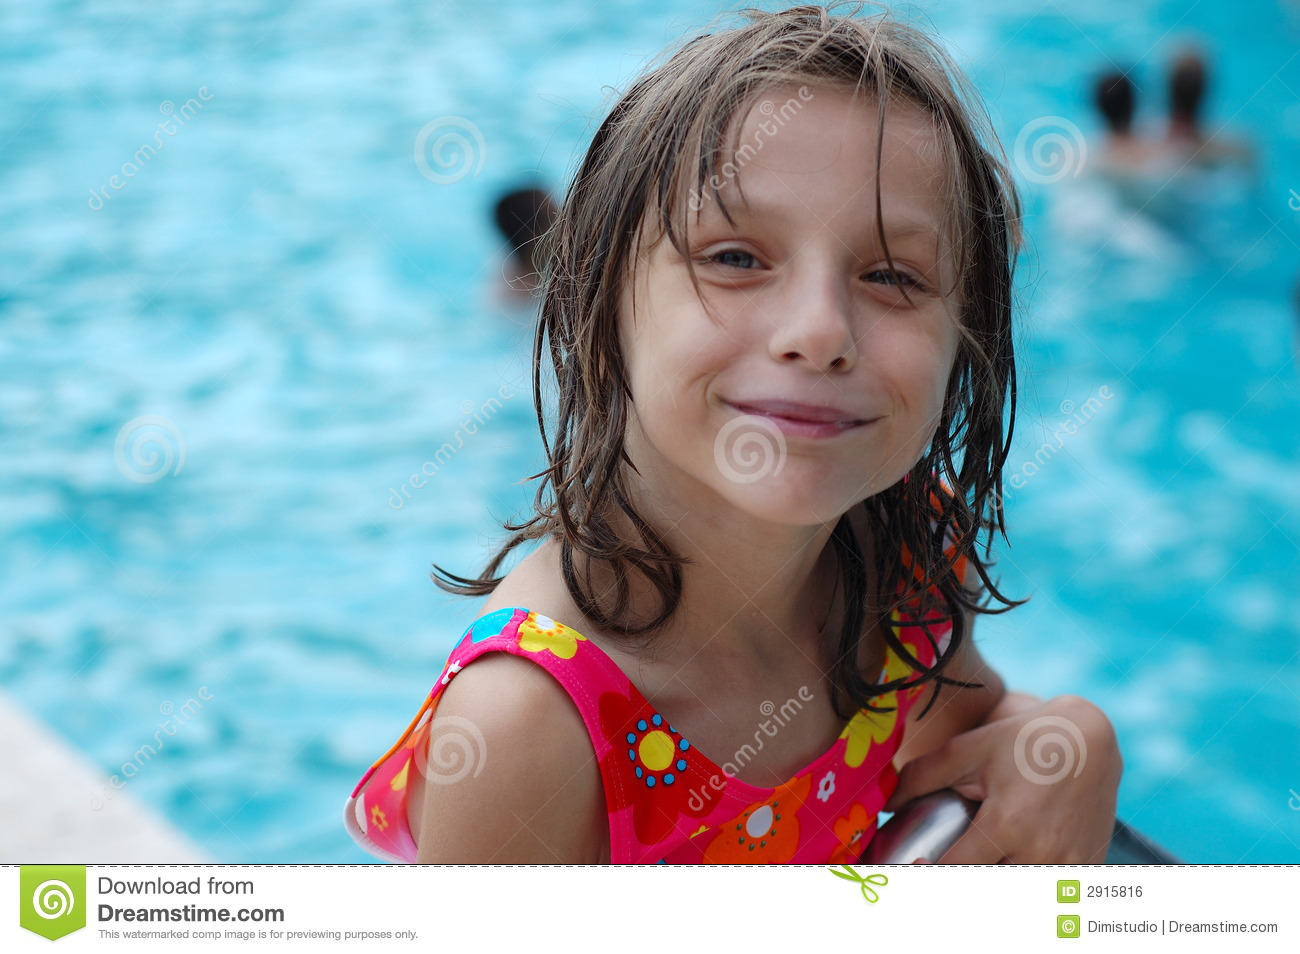 Cute Young Girl By Pool Royalty Free Stock Image - Image: 2915816